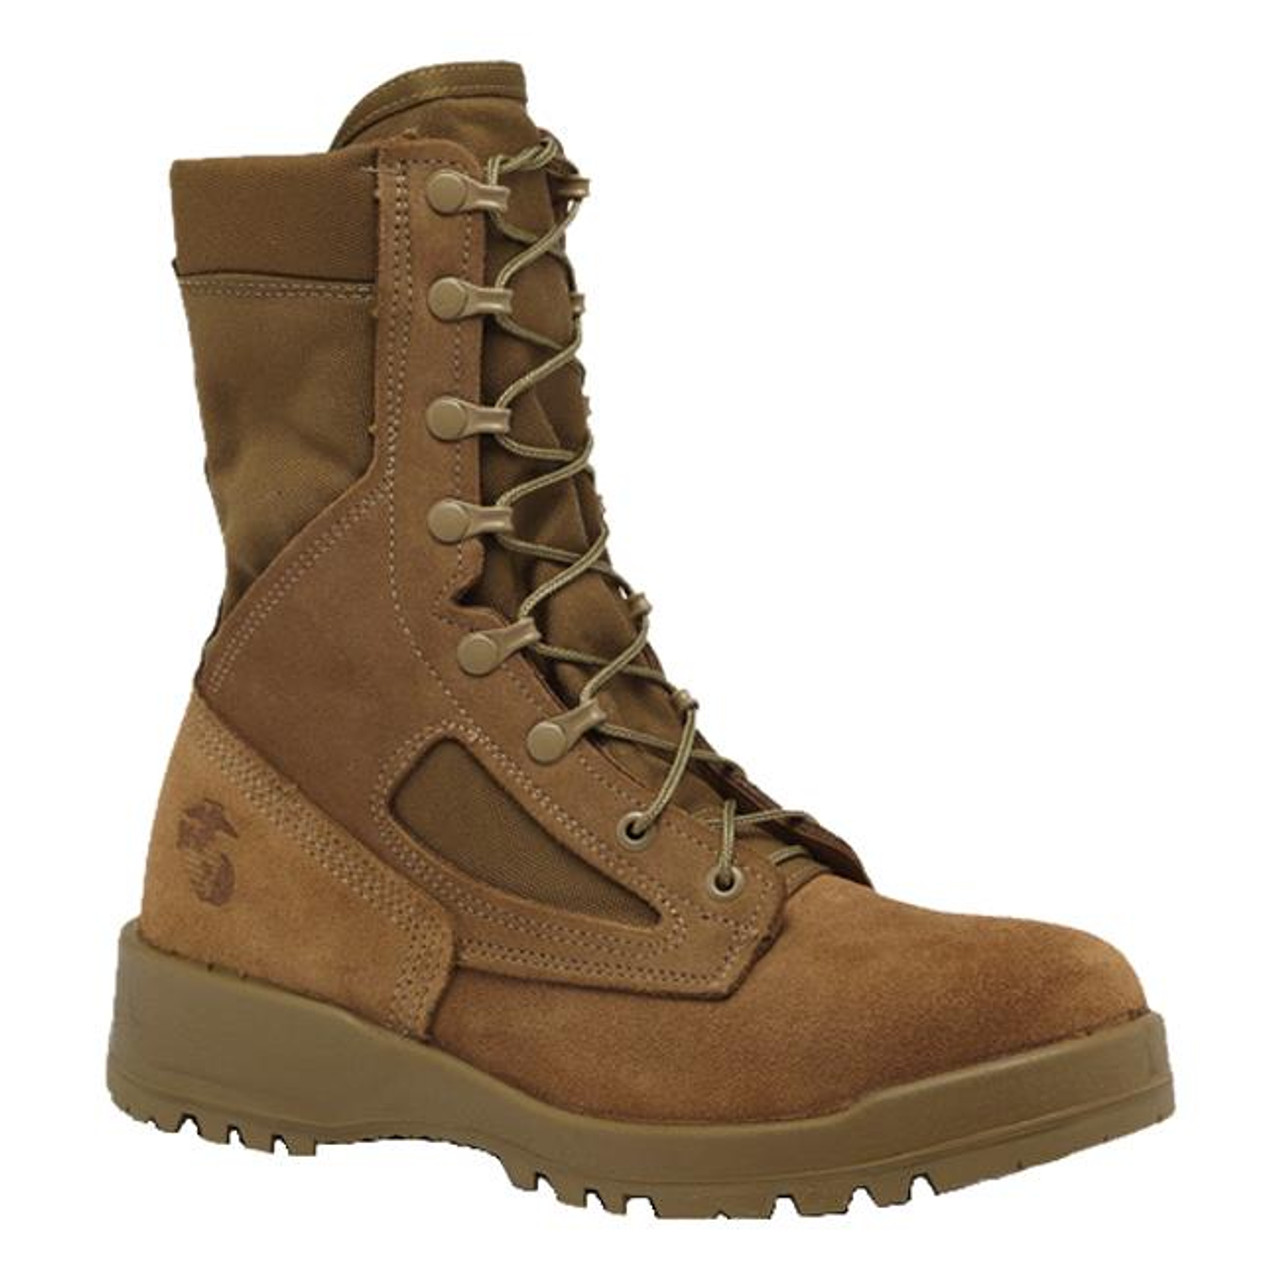 Belleville - USMC Hot Weather Boot 590 27c14707f